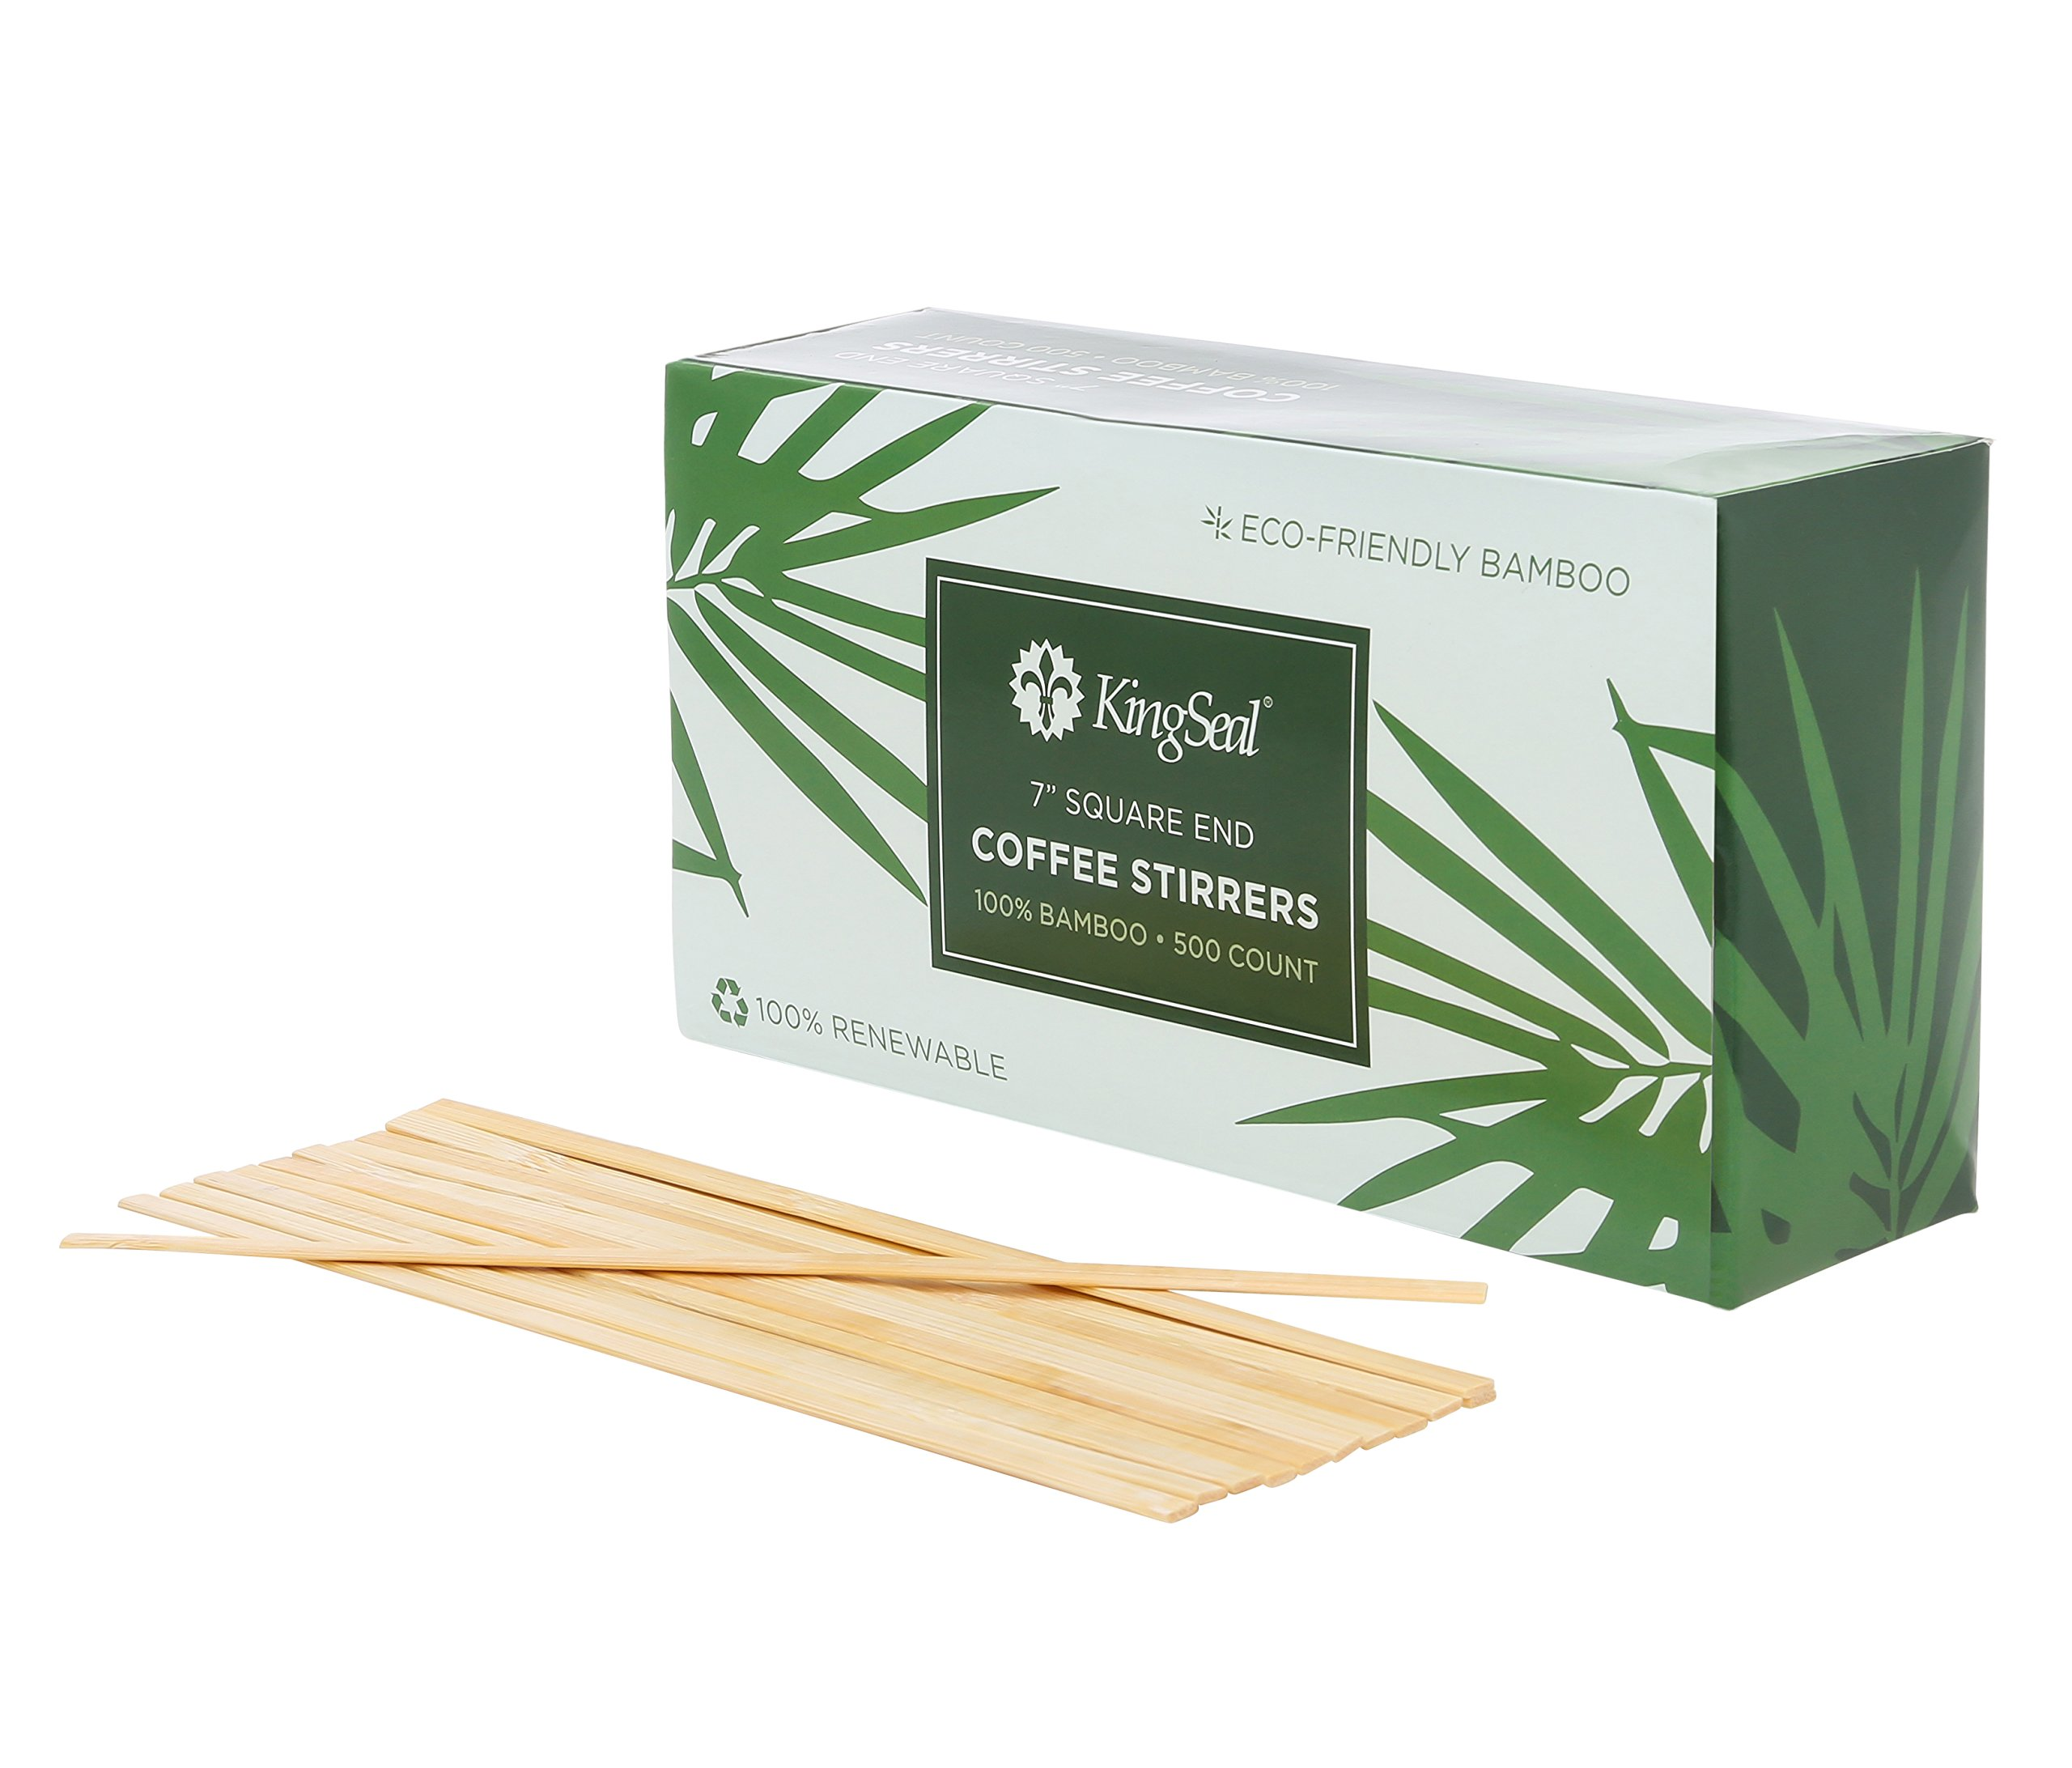 KingSeal Bamboo Wood Coffee Beverage Stirrers, Square End - 7 Inches, 4 boxes of 500 each, 100% Renewable and Biodegradable, Stronger and Thicker Than Standard Wood